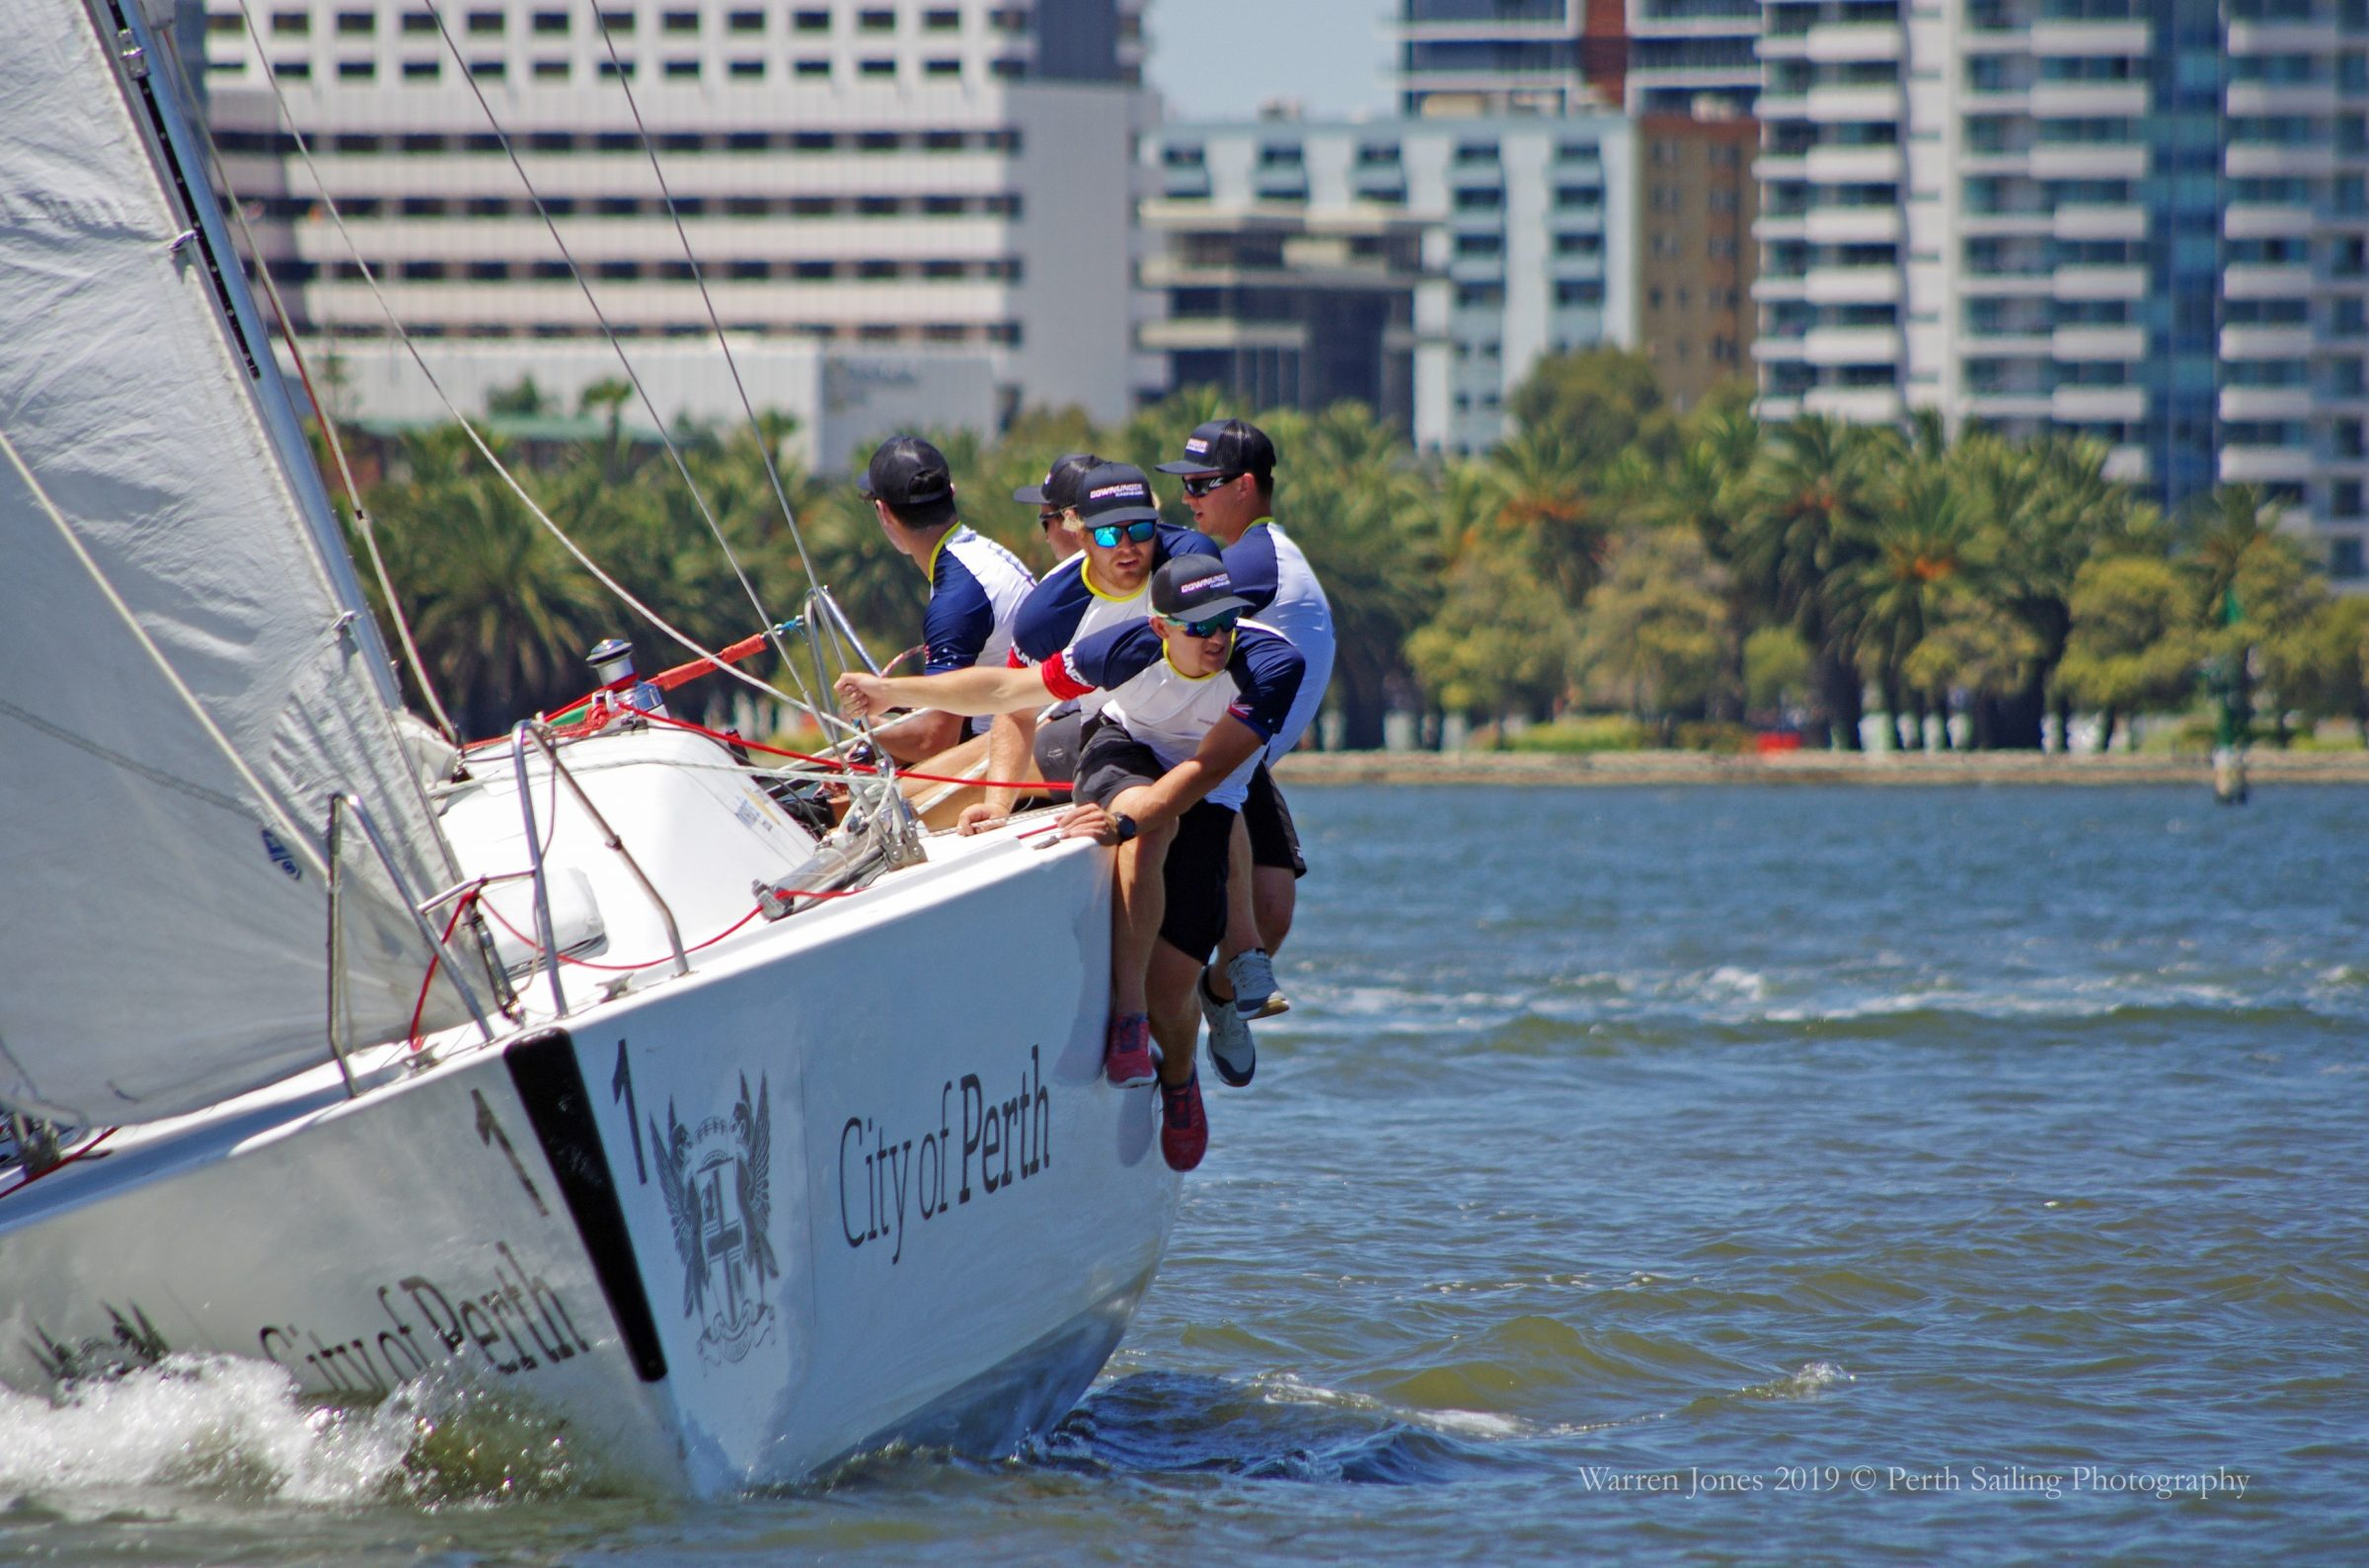 2019 City of Perth Festival of Sail Day 2 Warren Jones International Youth Regatta Harry Price